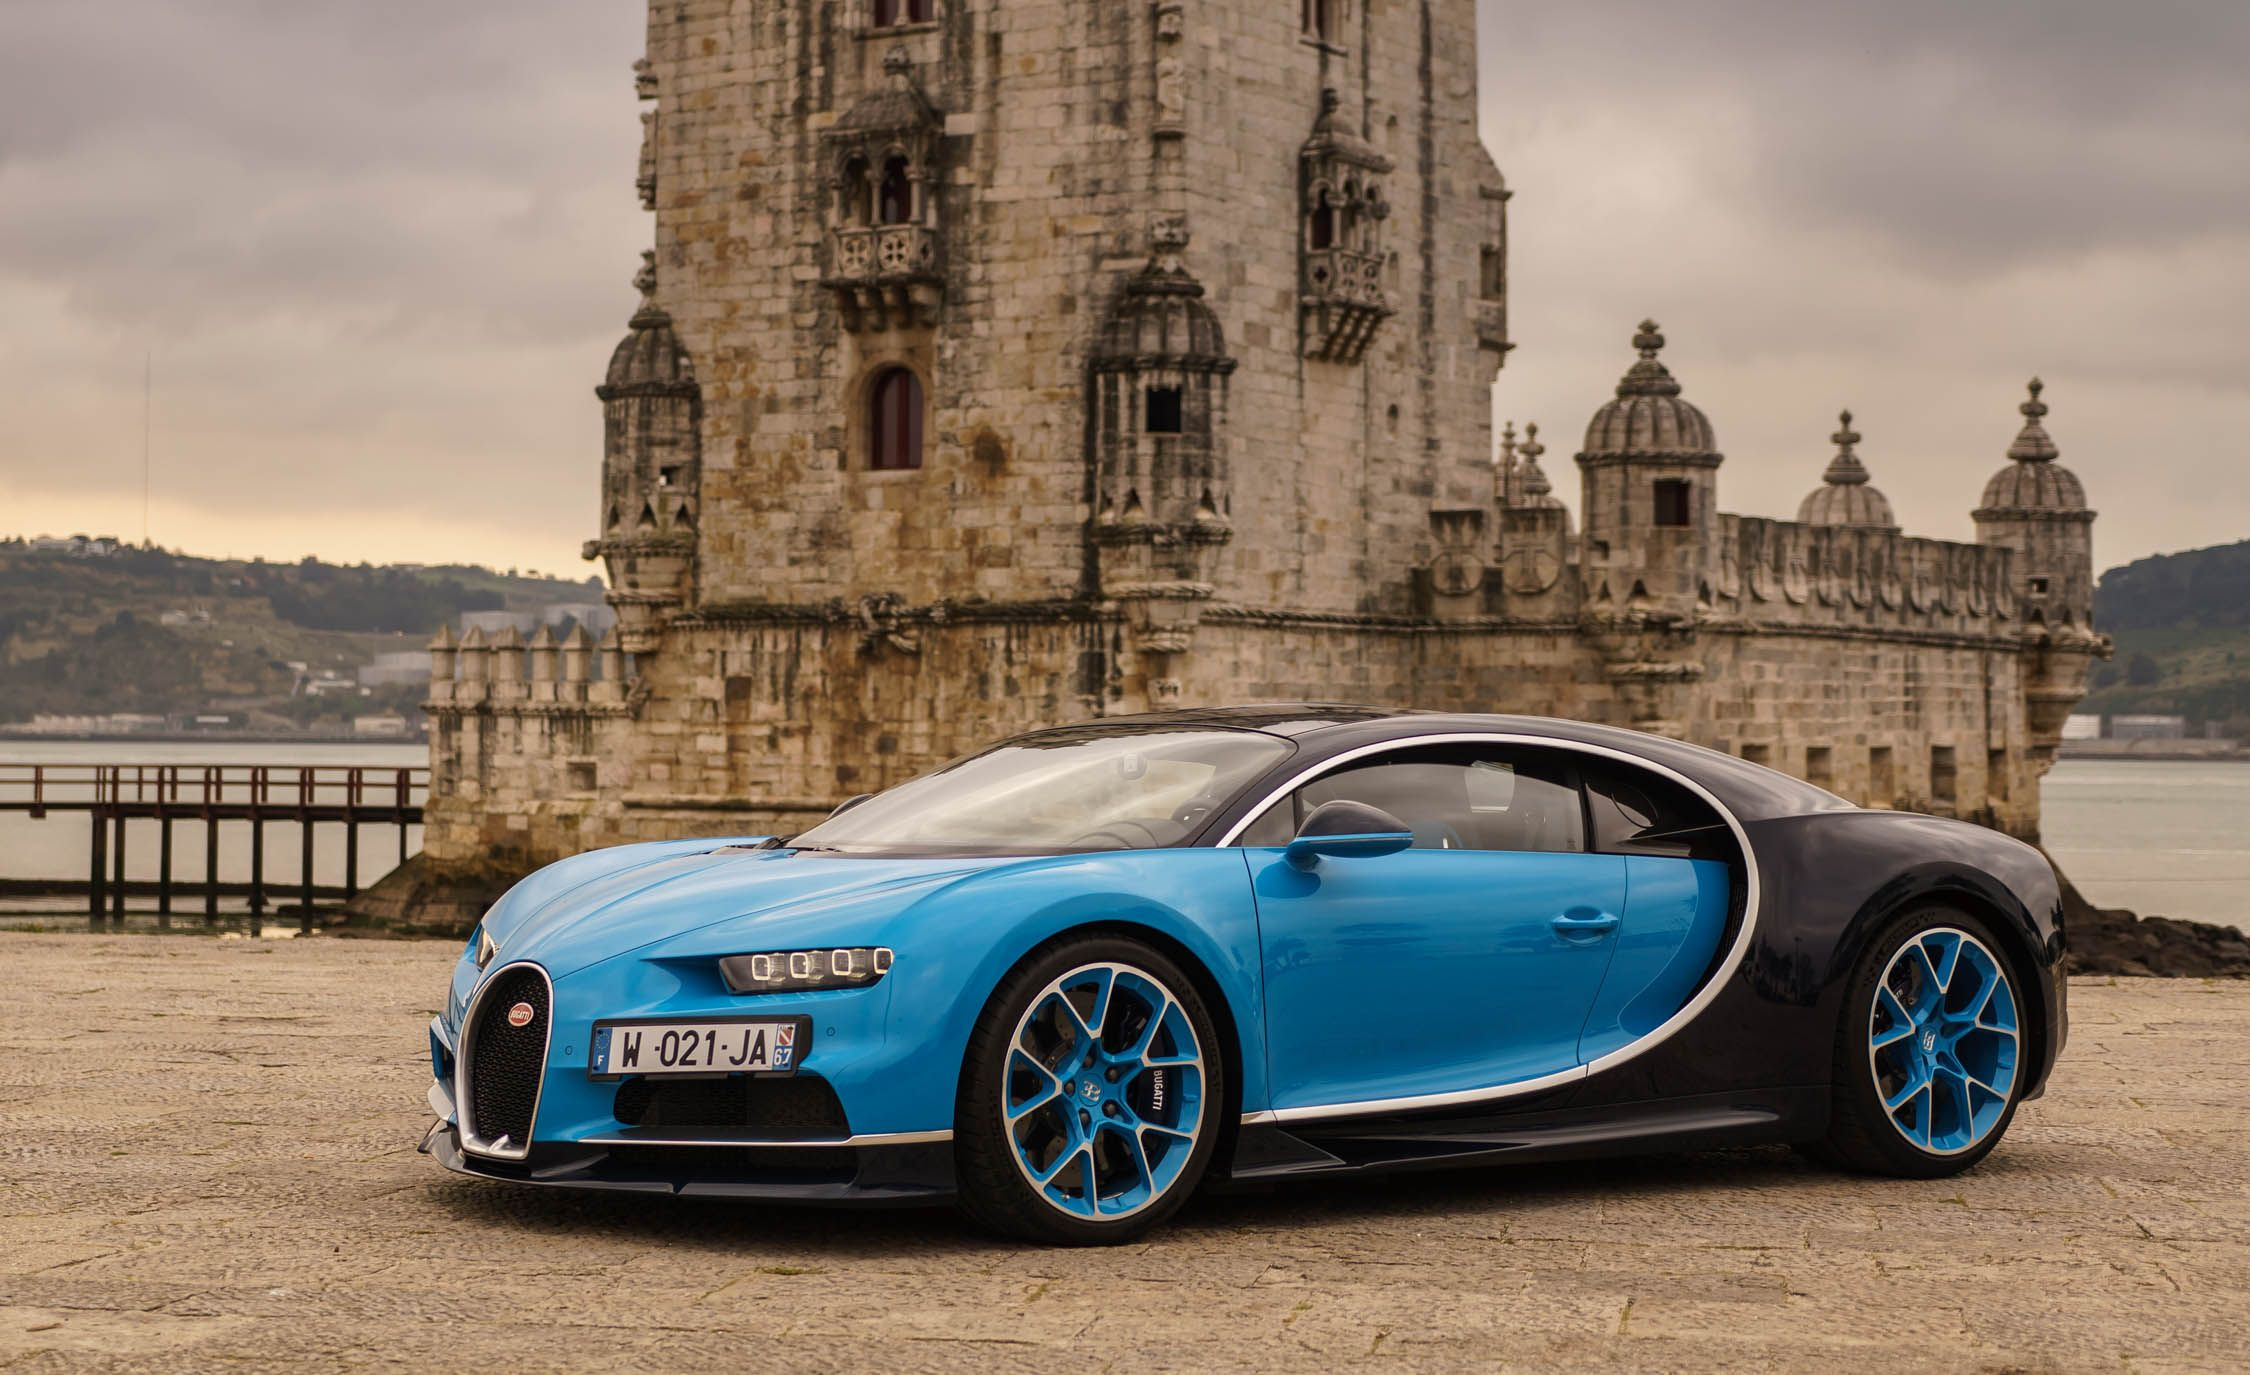 Bugatti Chiron Reviews | Bugatti Chiron Price, Photos, and Specs ...